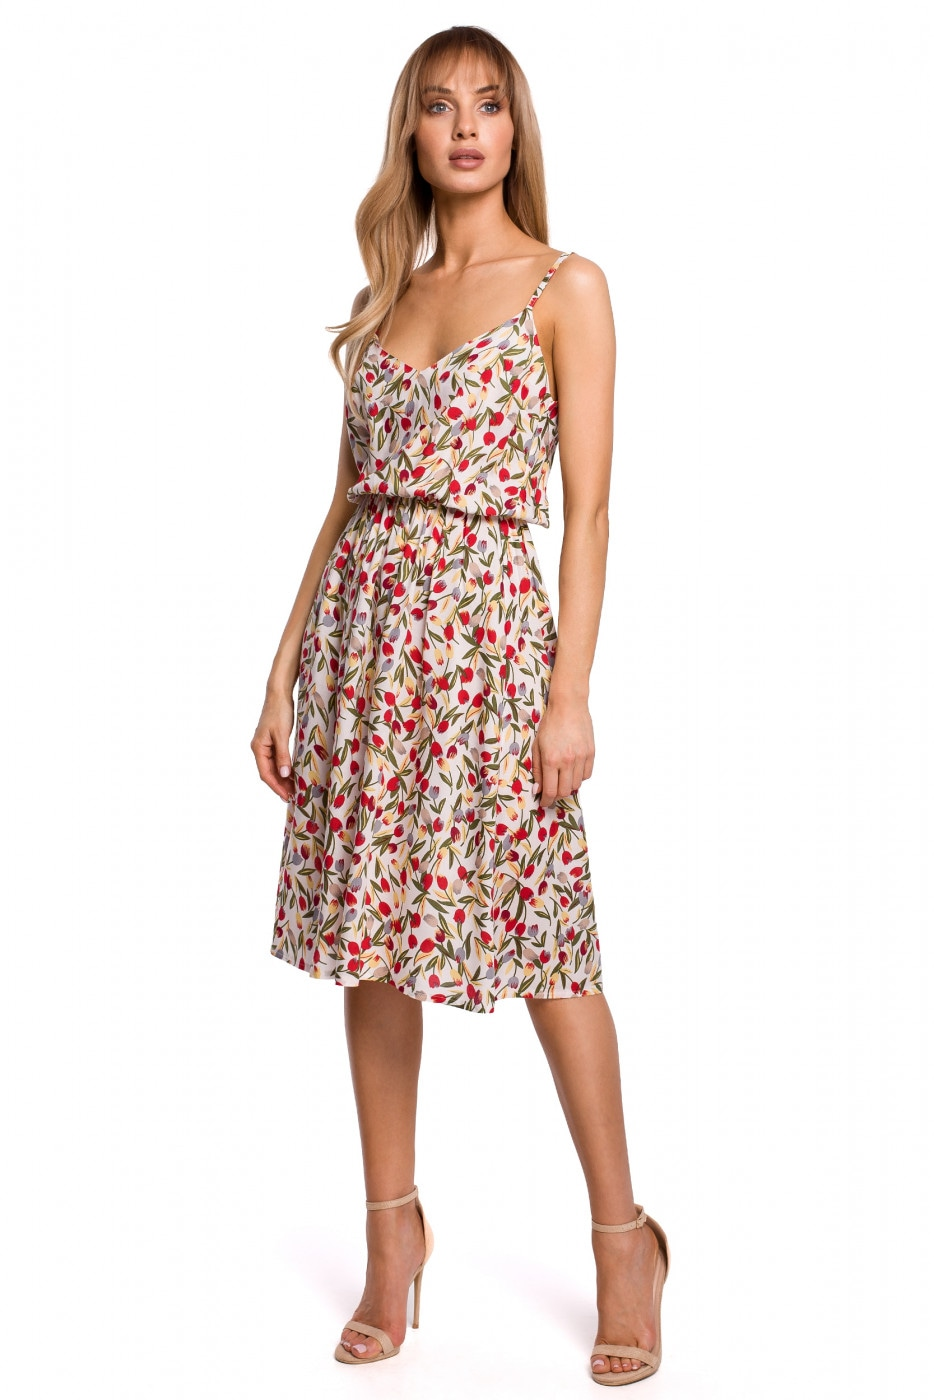 Made Of Emotion Woman's Dress M518